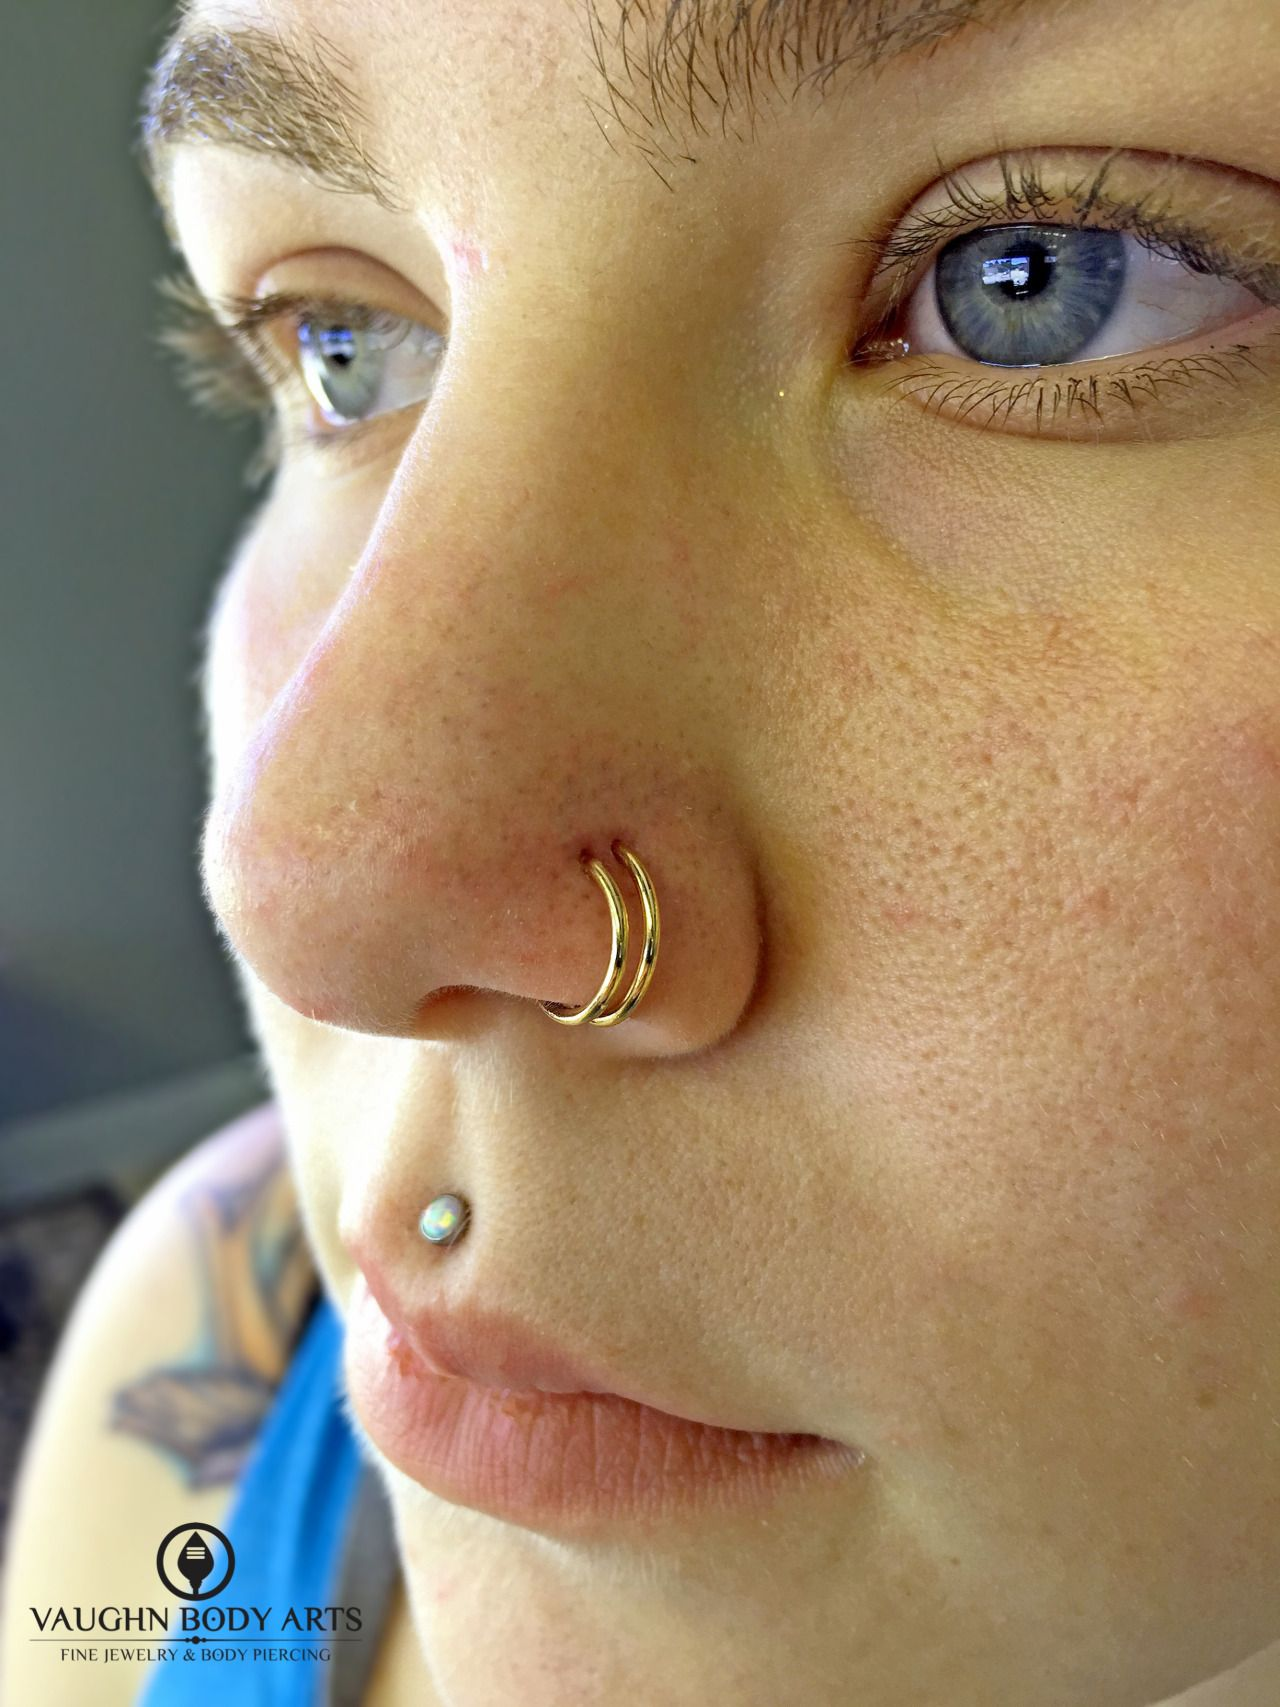 Healed up nose piercing  We did a pair of nostril piercings for Cassandra a few months ago